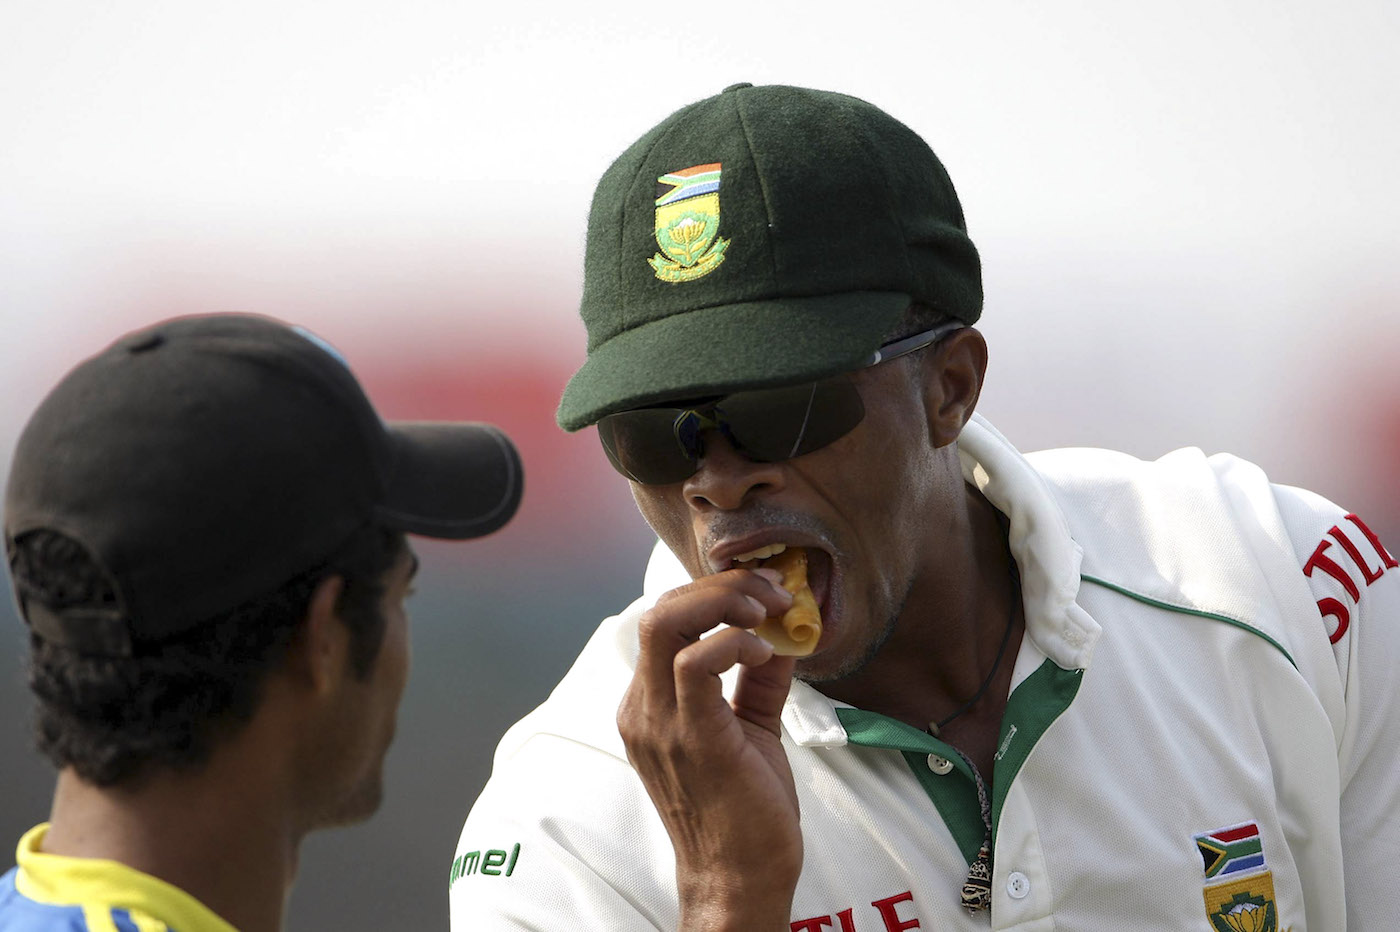 Animal instinct: Makhaya Ntini's reasons to go vegetarian had more to do with practicality and convenience, but he feels fitter for the change